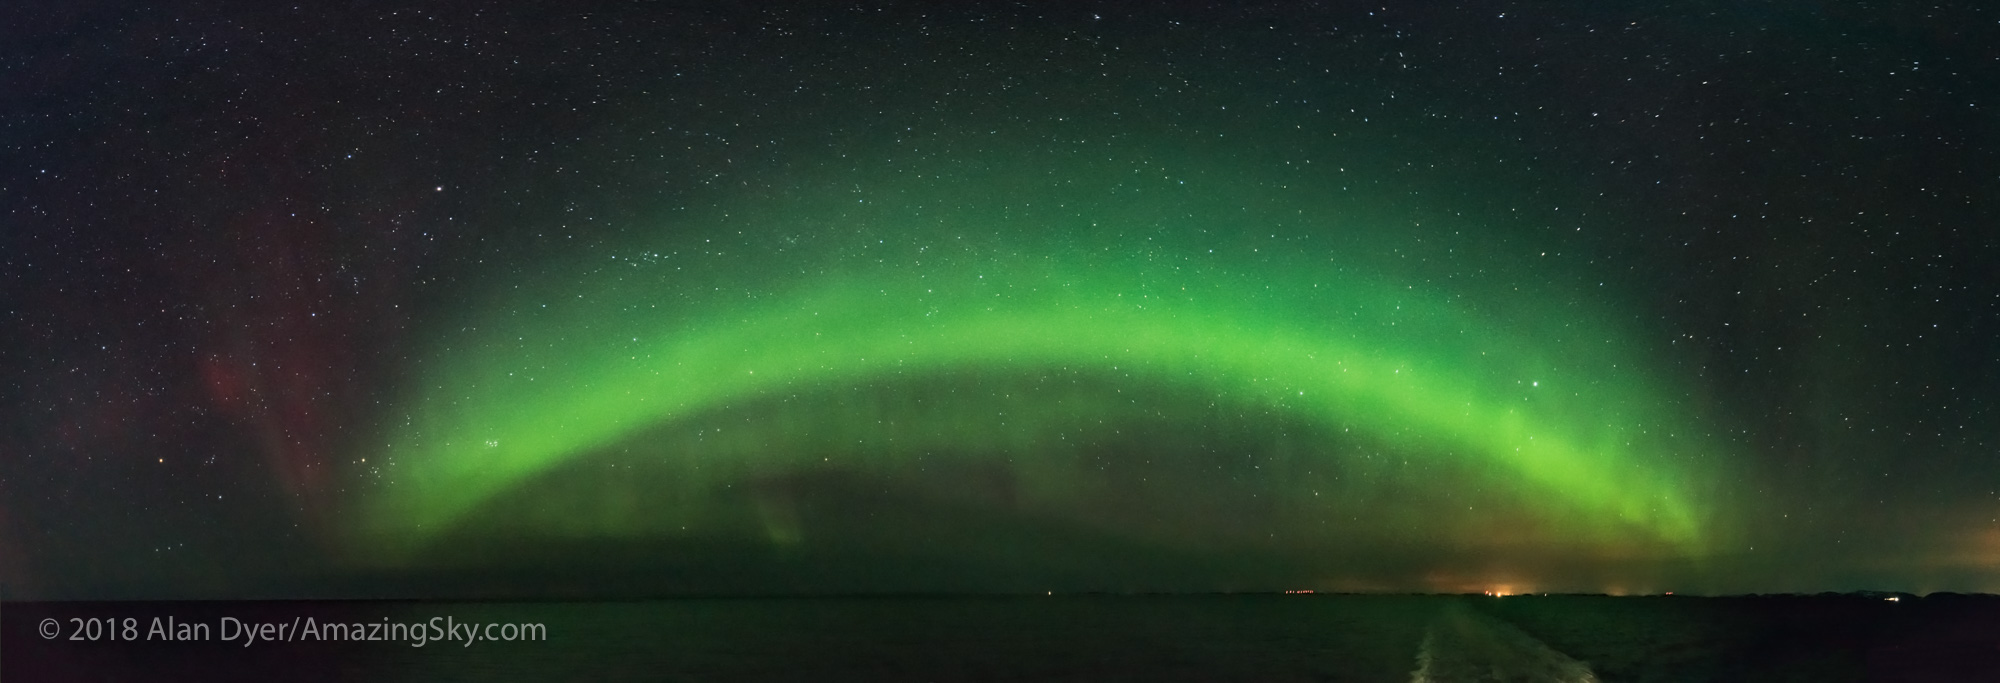 Panorama of the Auroral Oval from Norway